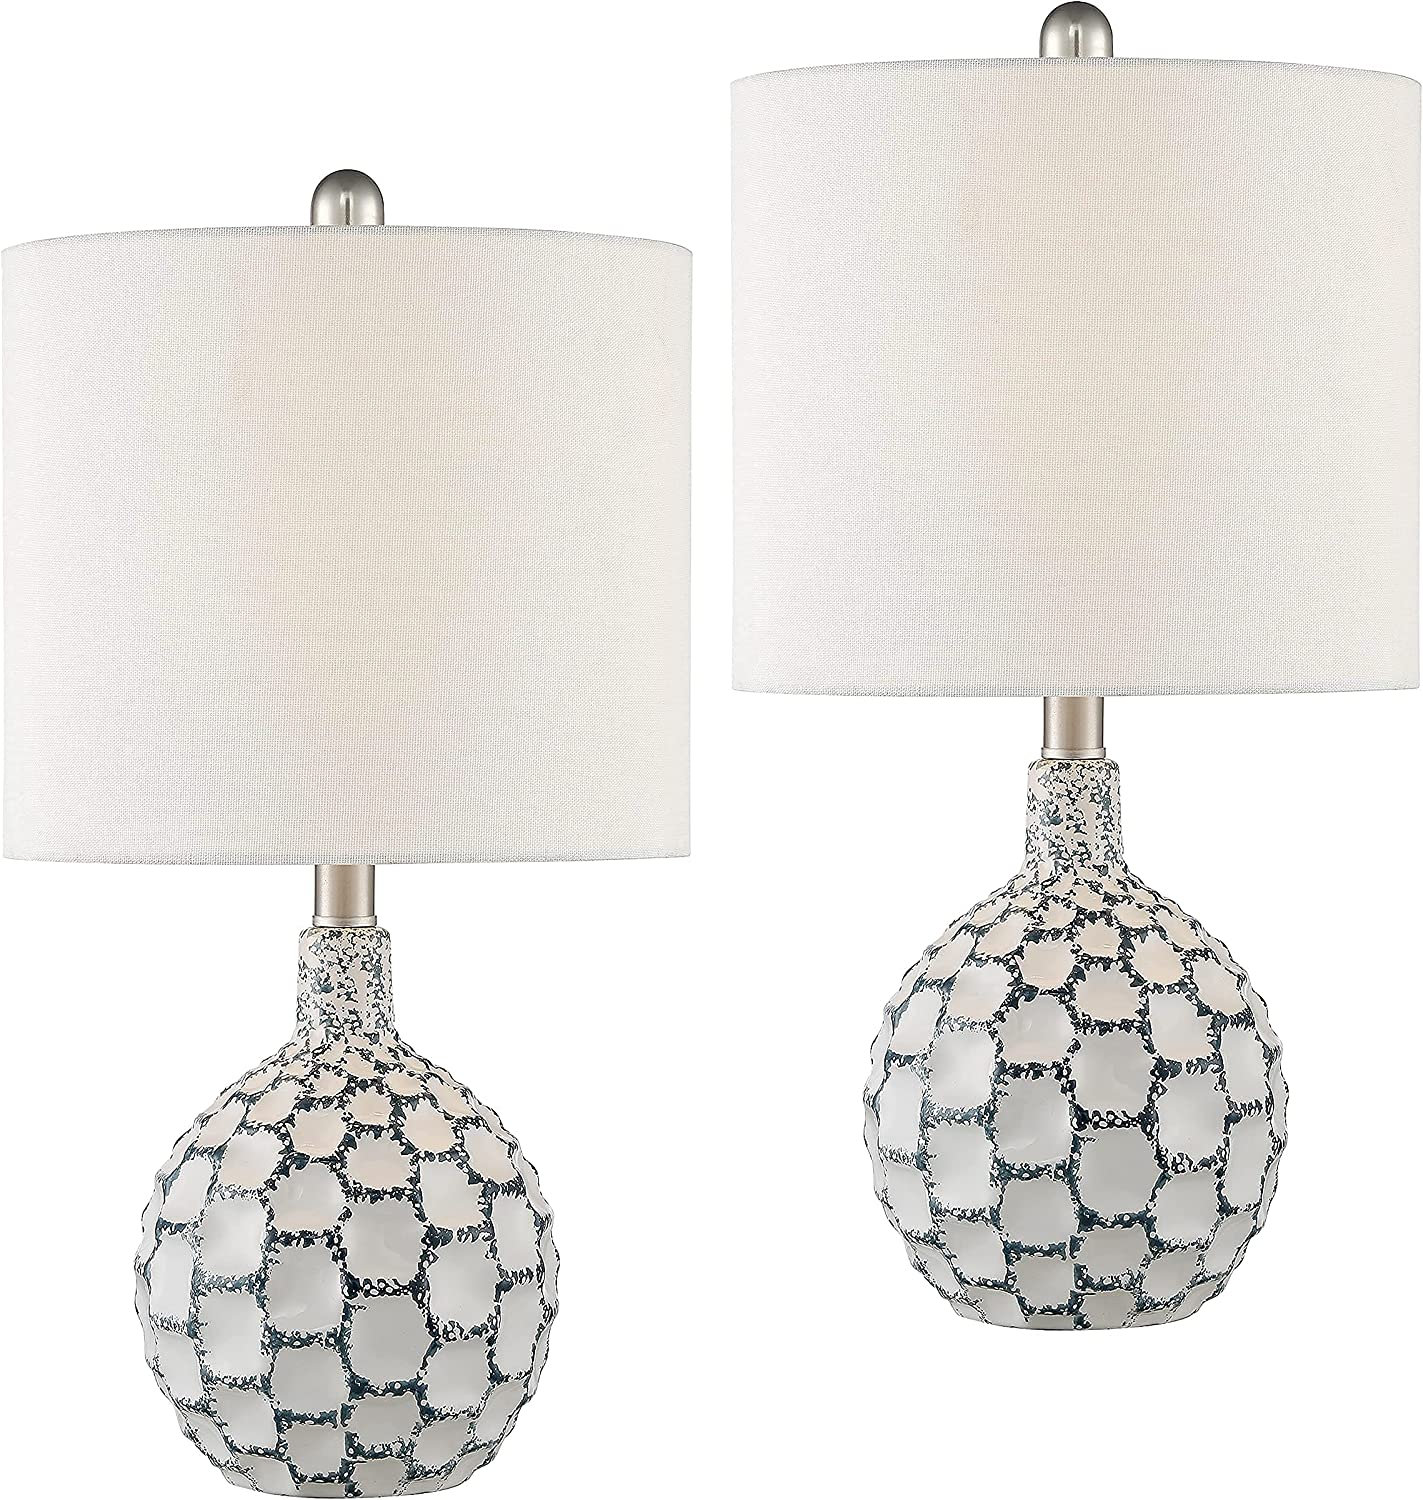 Maxax Popular brand in the world Tulsa Mall Table Lamp Set of 2 Ceramic Desk White with Bedside